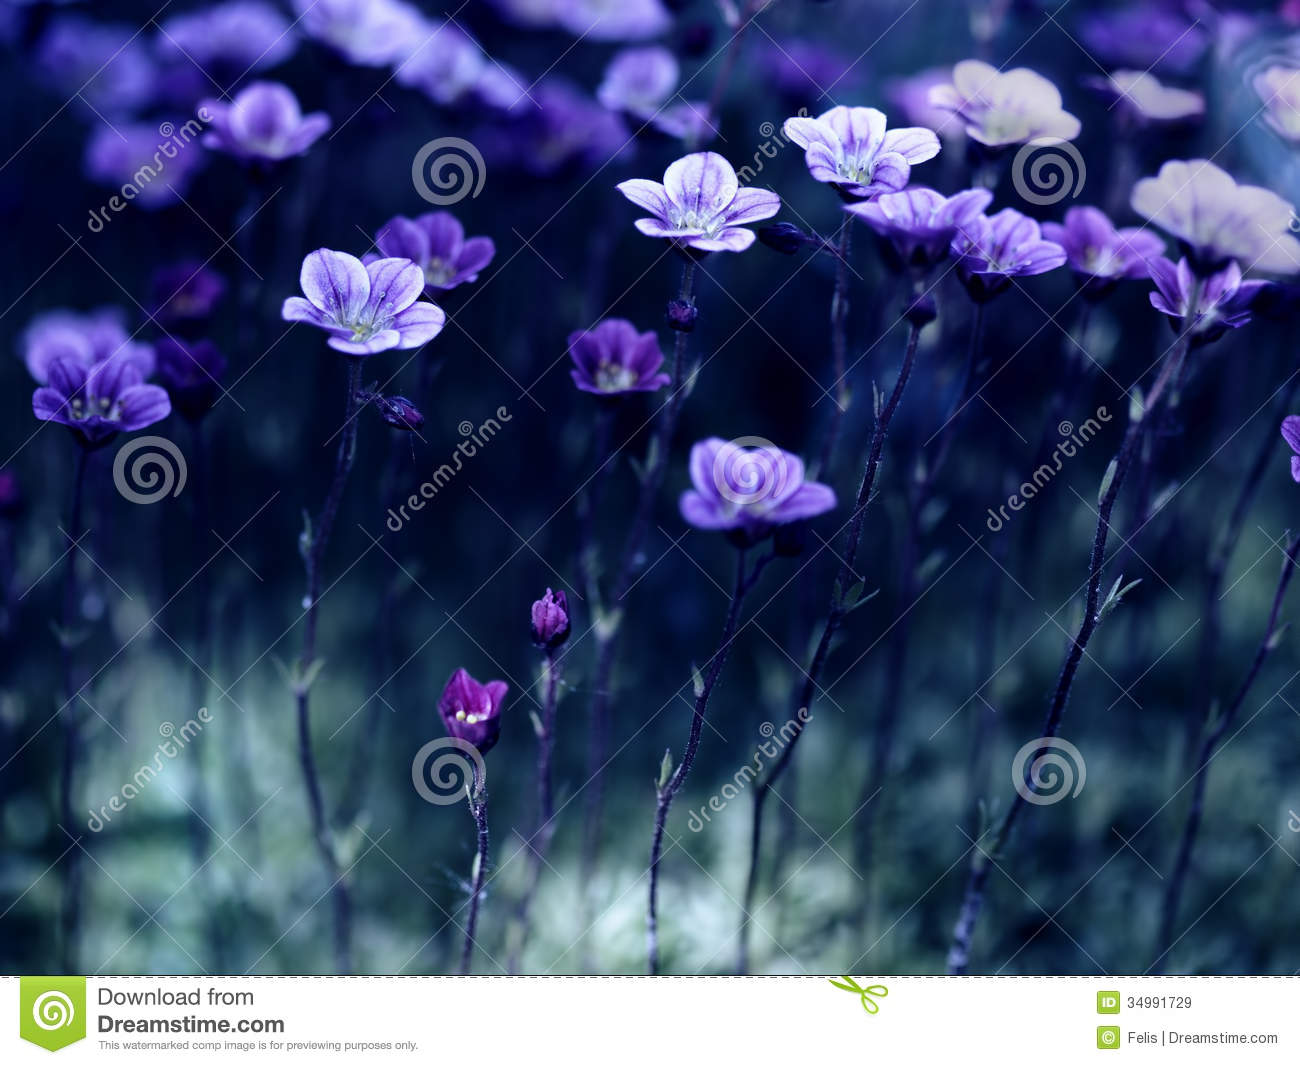 flowers in the moonlight royalty free stock images image 34991729